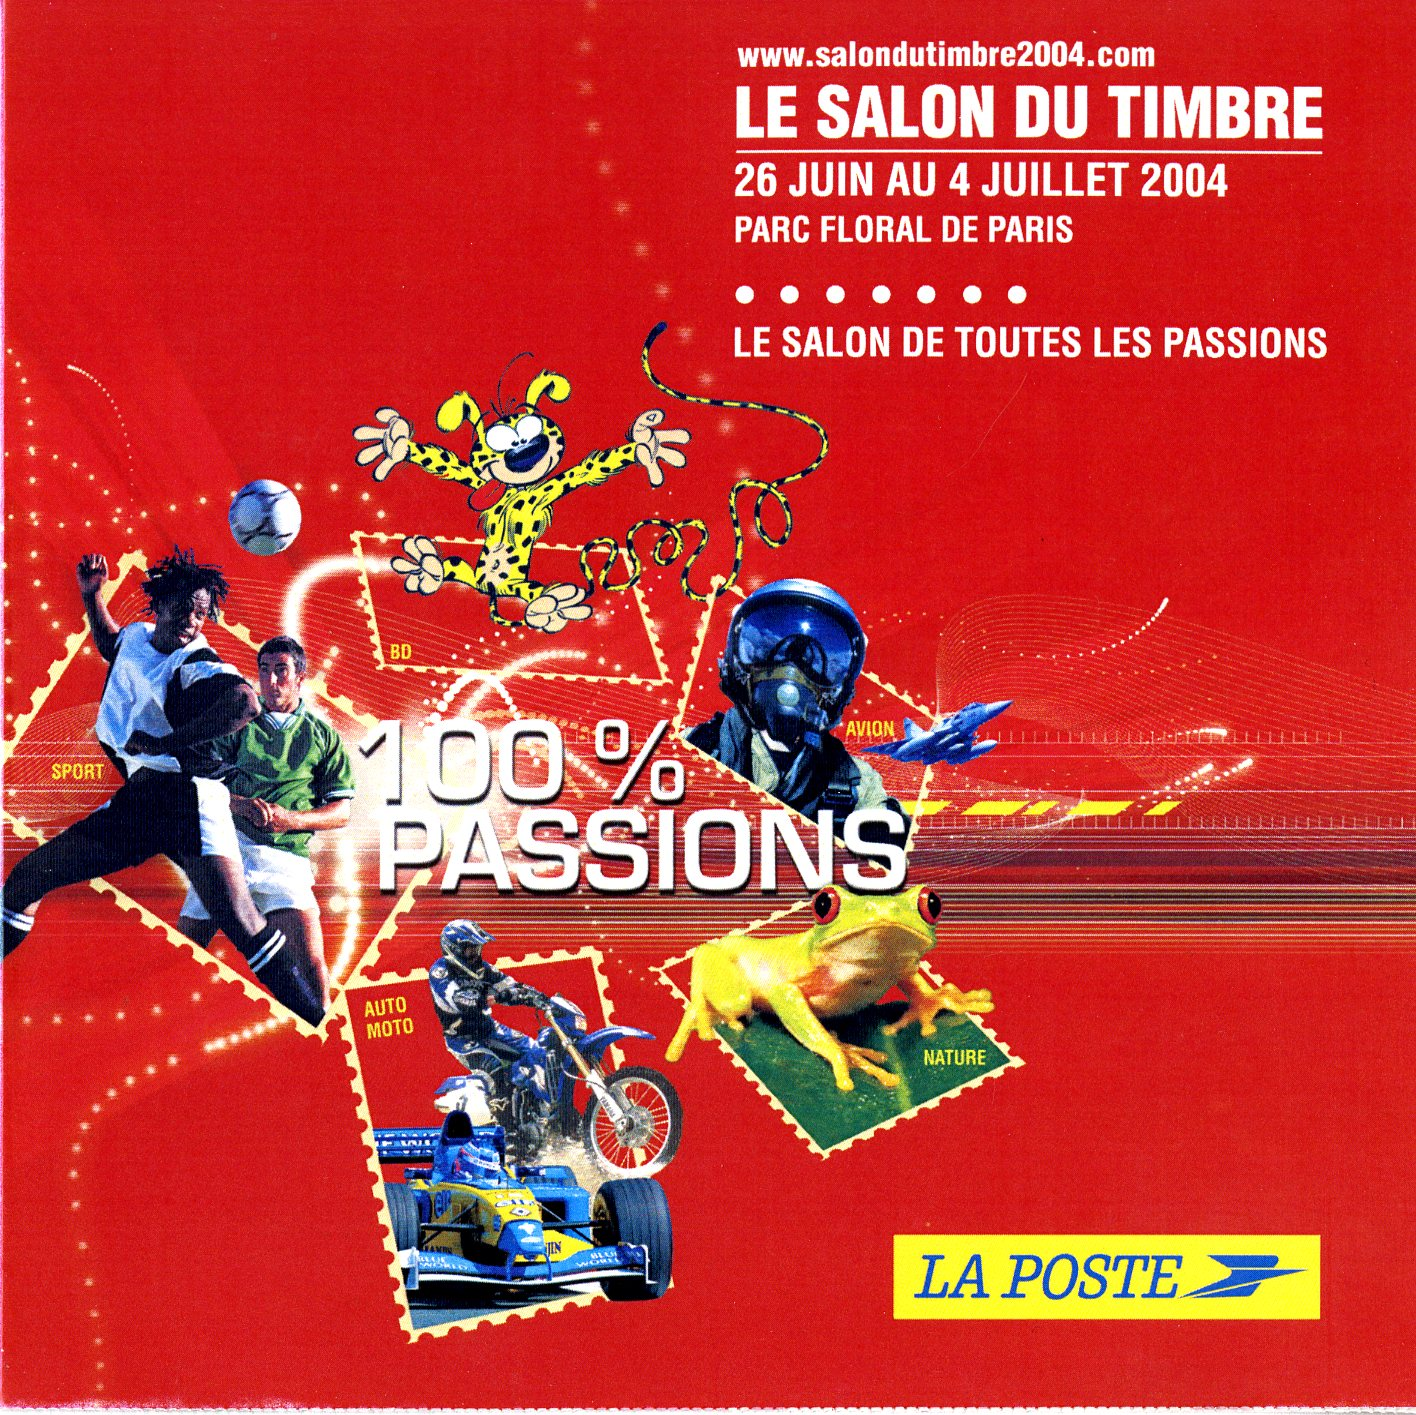 SALON DU TIMBRE 2004